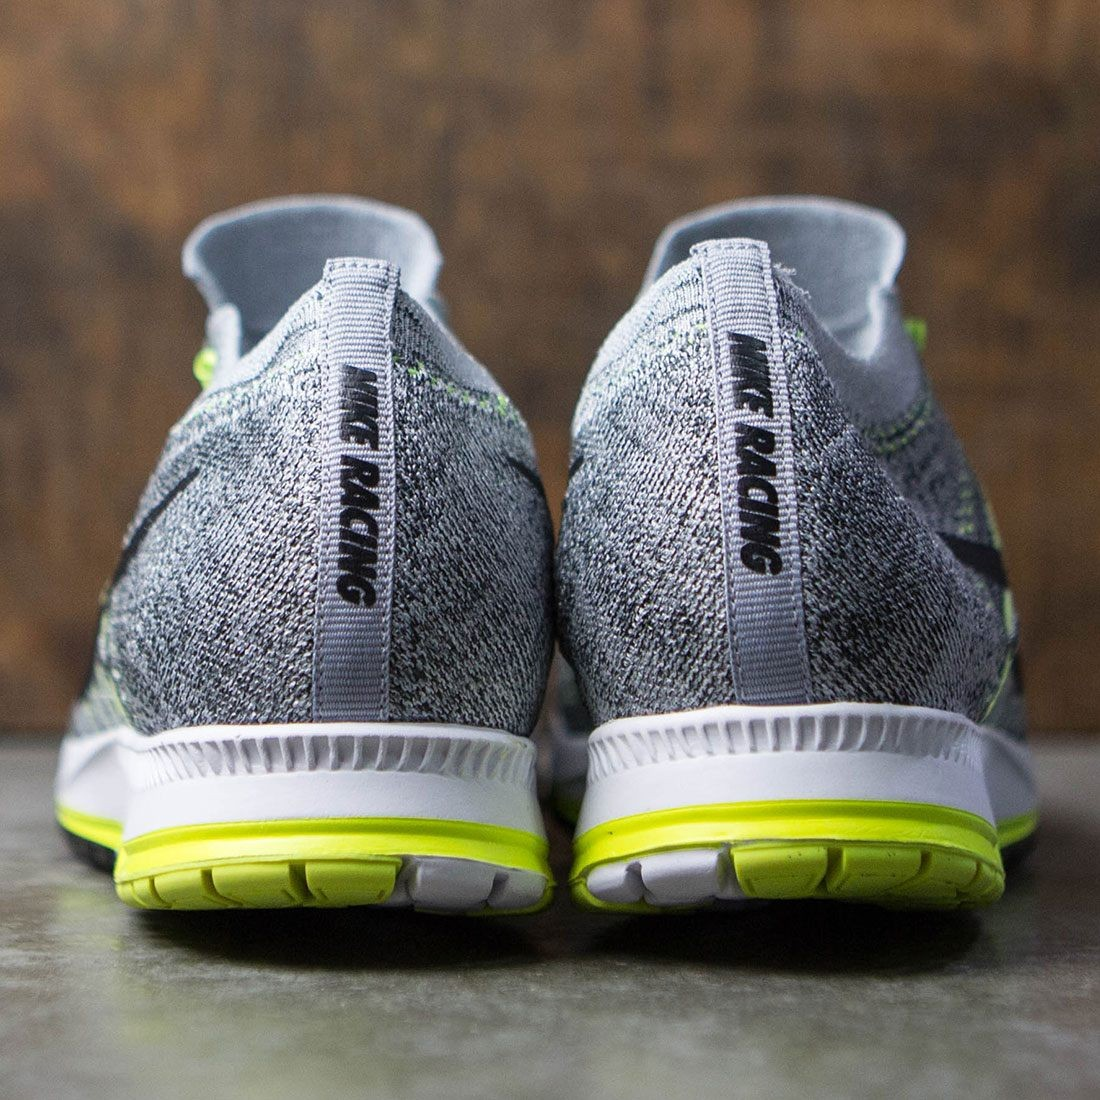 7e0fbd1926ce Nike Men Air Zoom Flyknit Streak 6 Racing (wolf grey    black-anthracite-pure platinum)